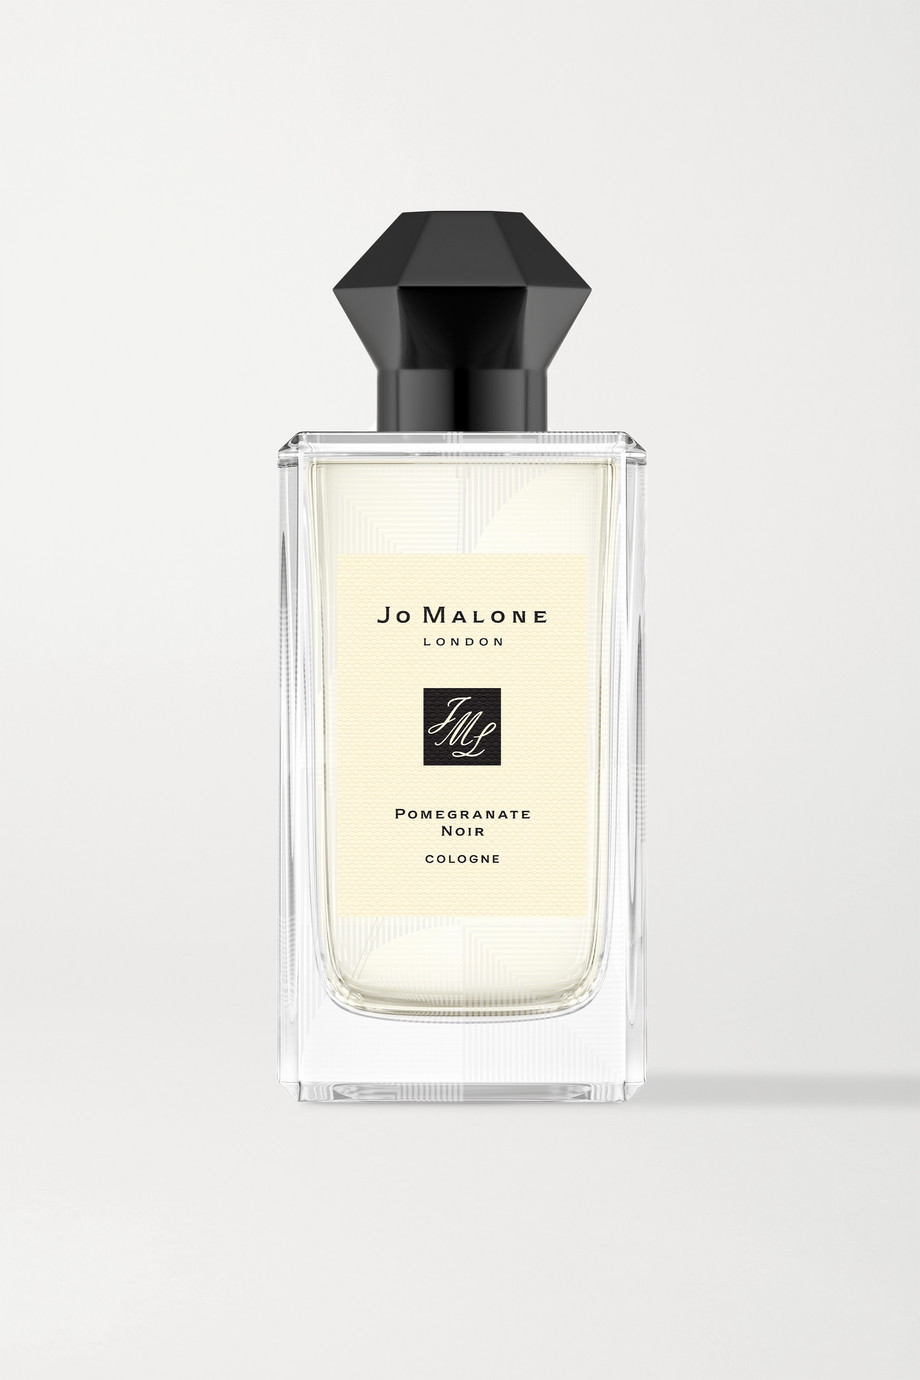 Jo Malone London Pomegranate Noir, 100 ml – Eau de Cologne